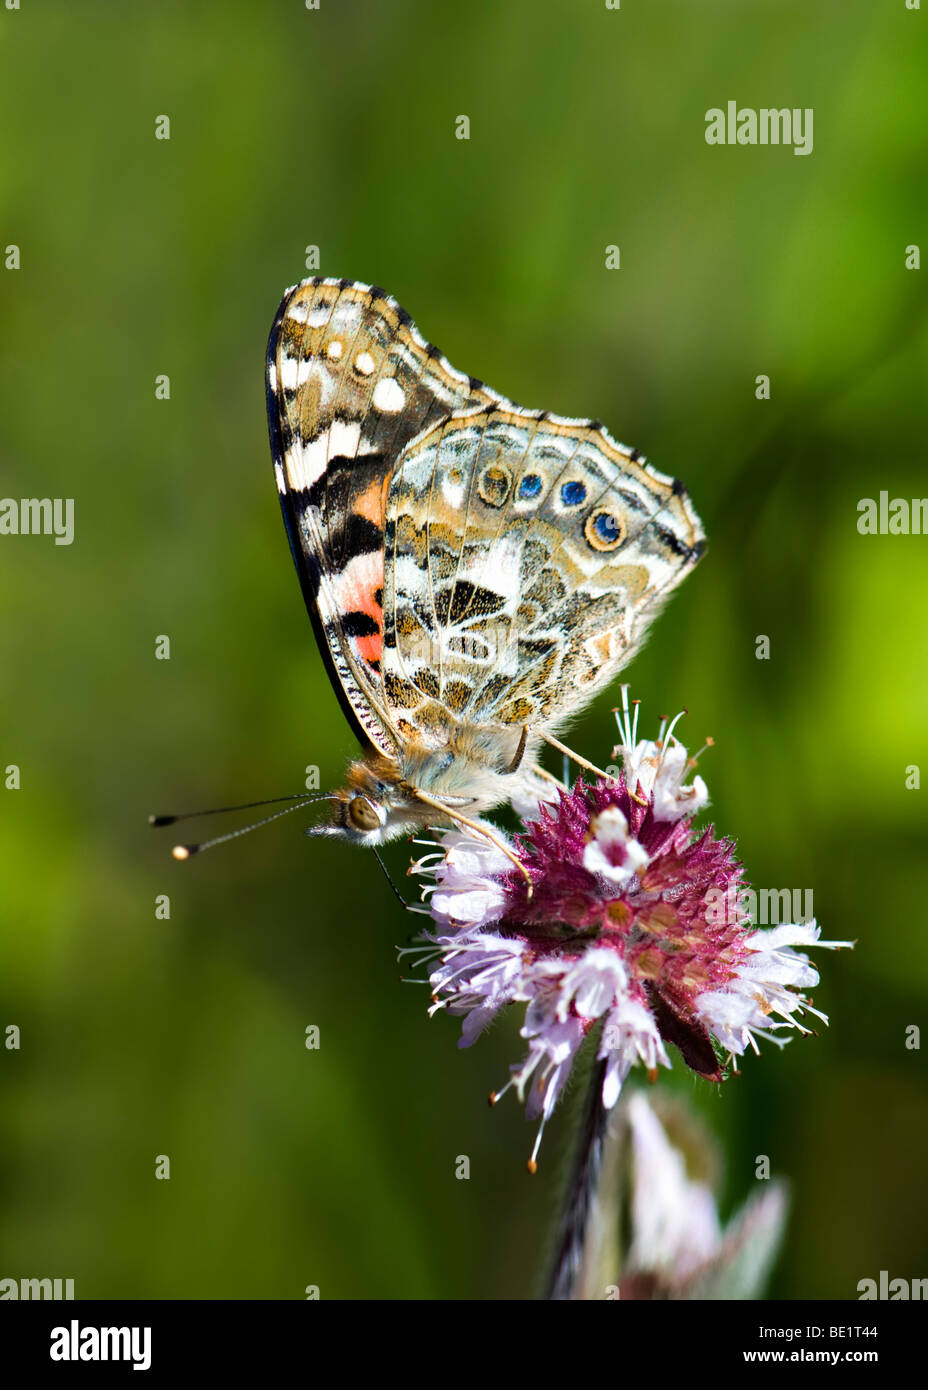 Painted lady butterfly feeding on wild mint plant - Stock Image